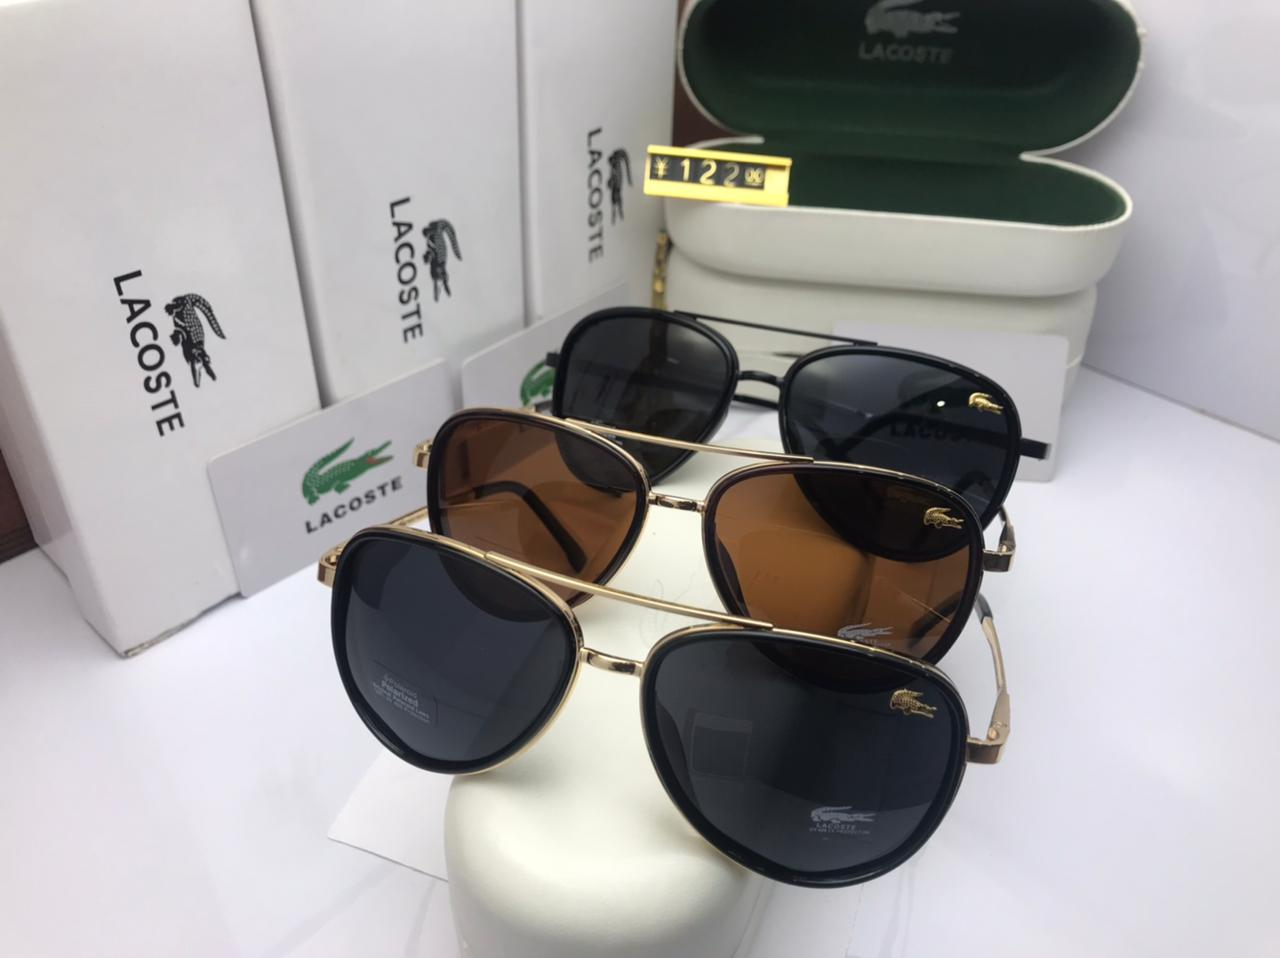 Lacoste Shades for him with Brand Box